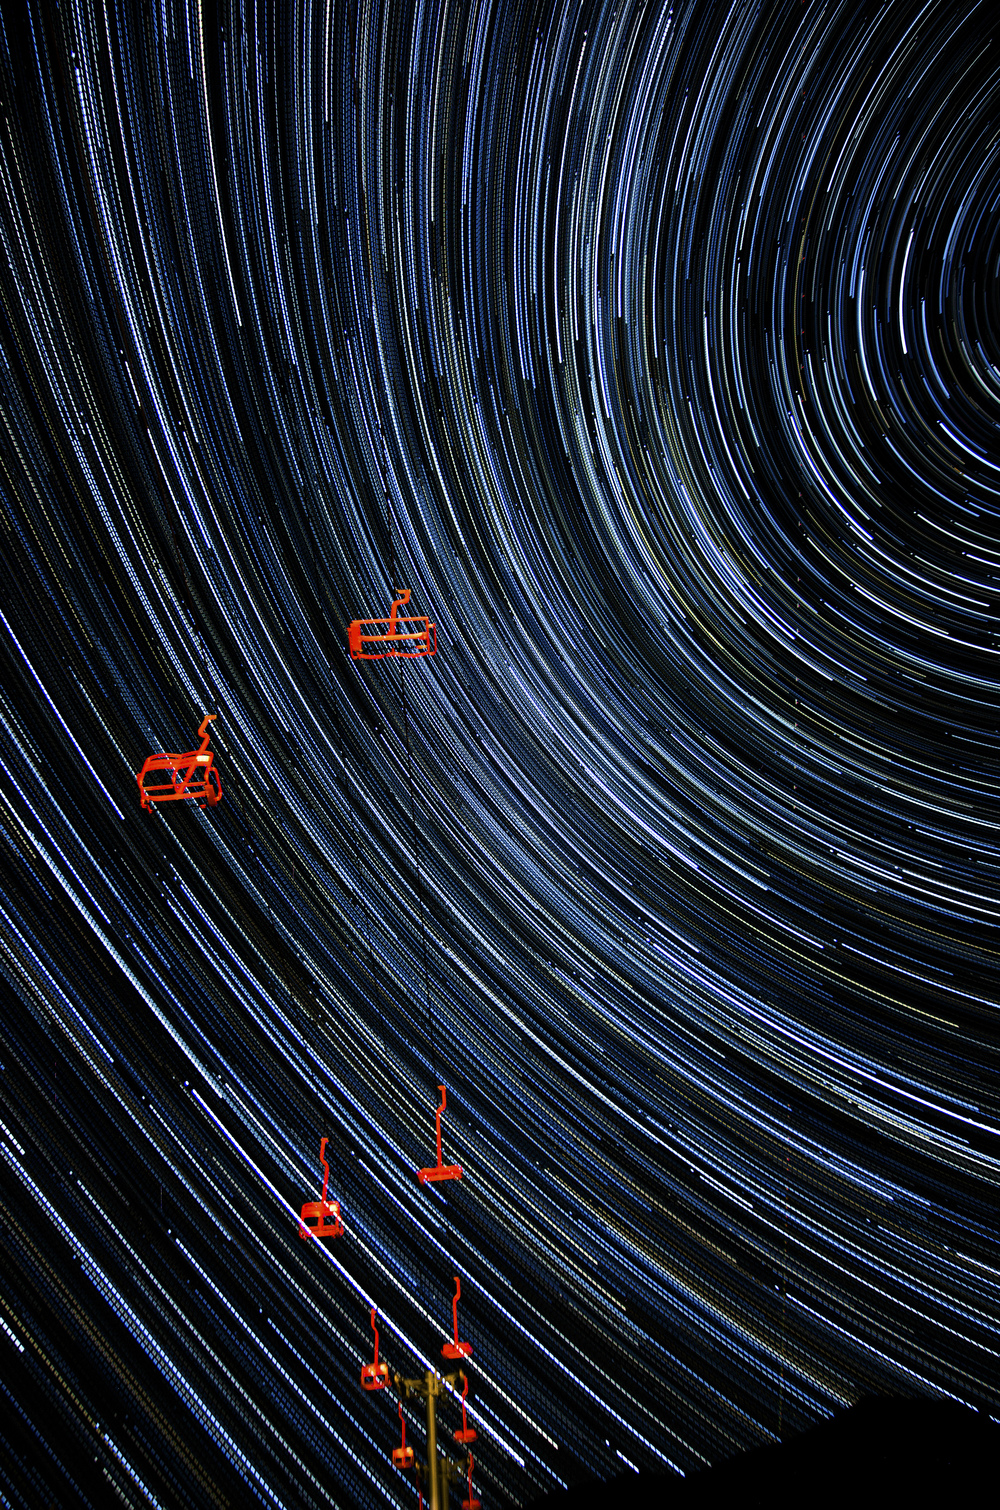 Red Chair Star Trails